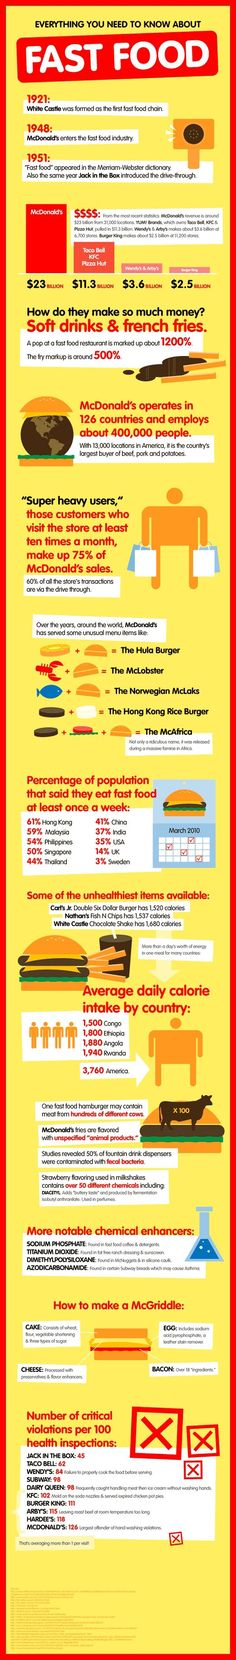 Everything you need to know about fast food. 'o' dont read if you want to eat fast food happily again